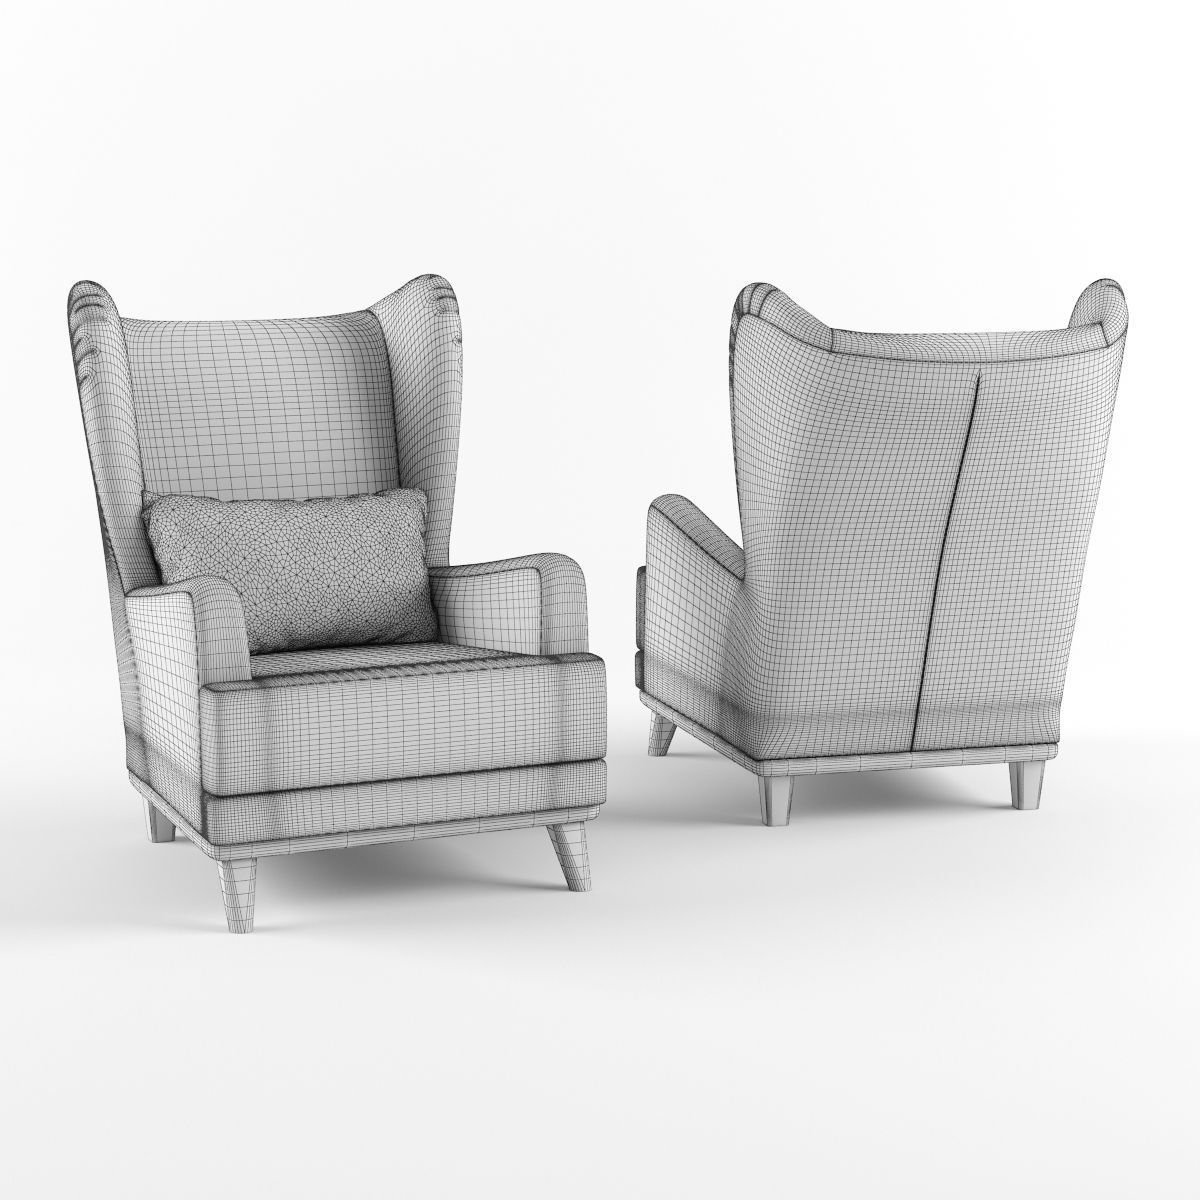 Armchair with headrest and pillow 3D Model .max .obj .fbx ...